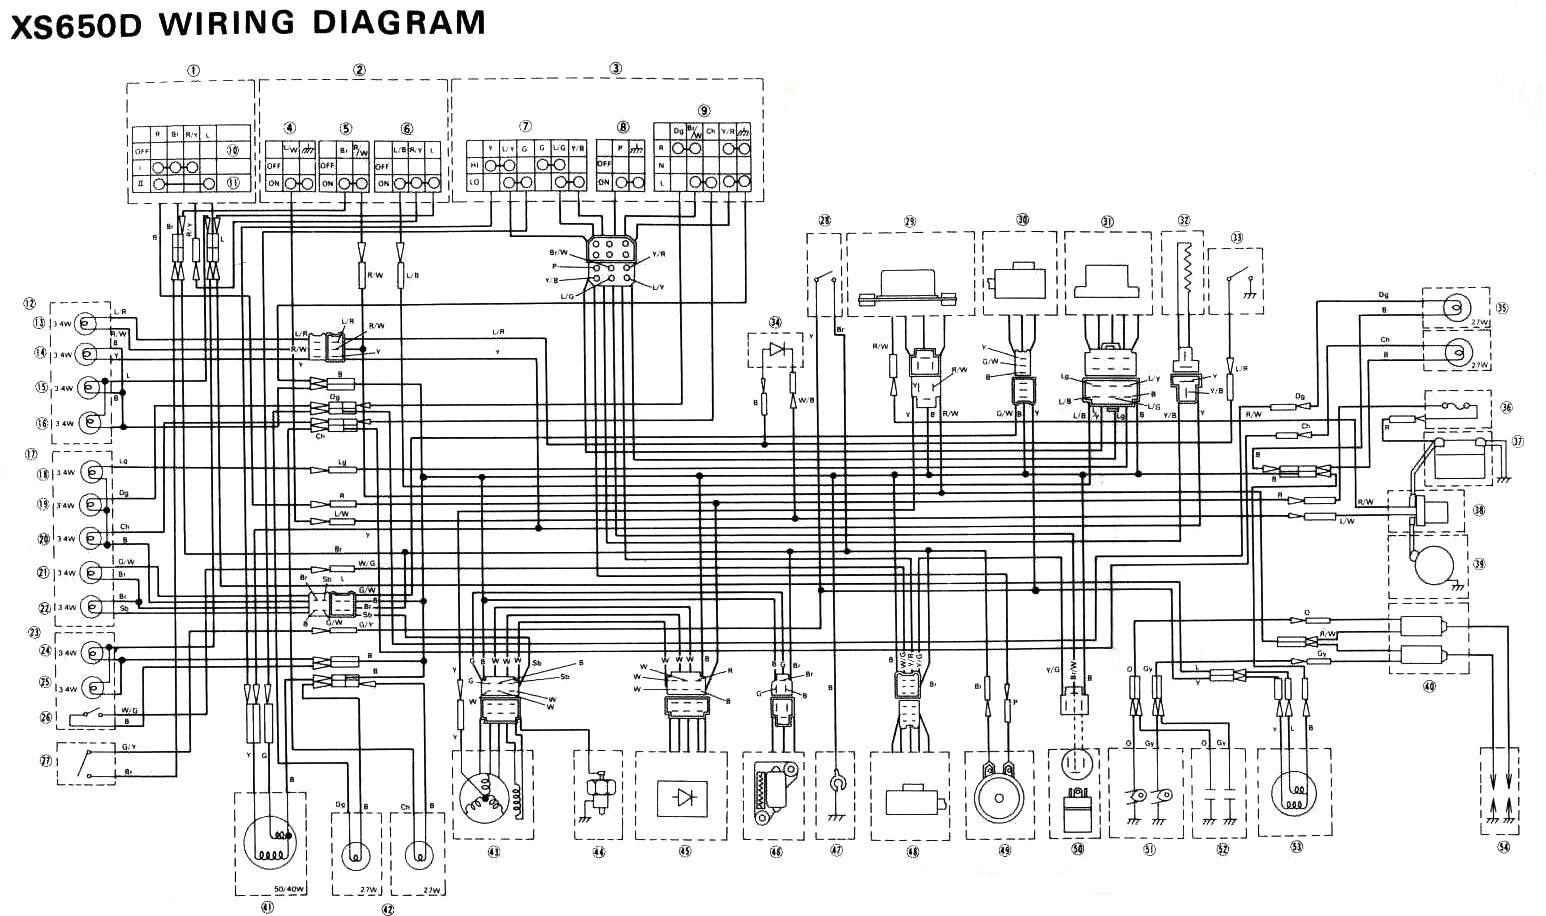 1978 Xs650 Wiring Diagram Schematic - Wiring Diagram •